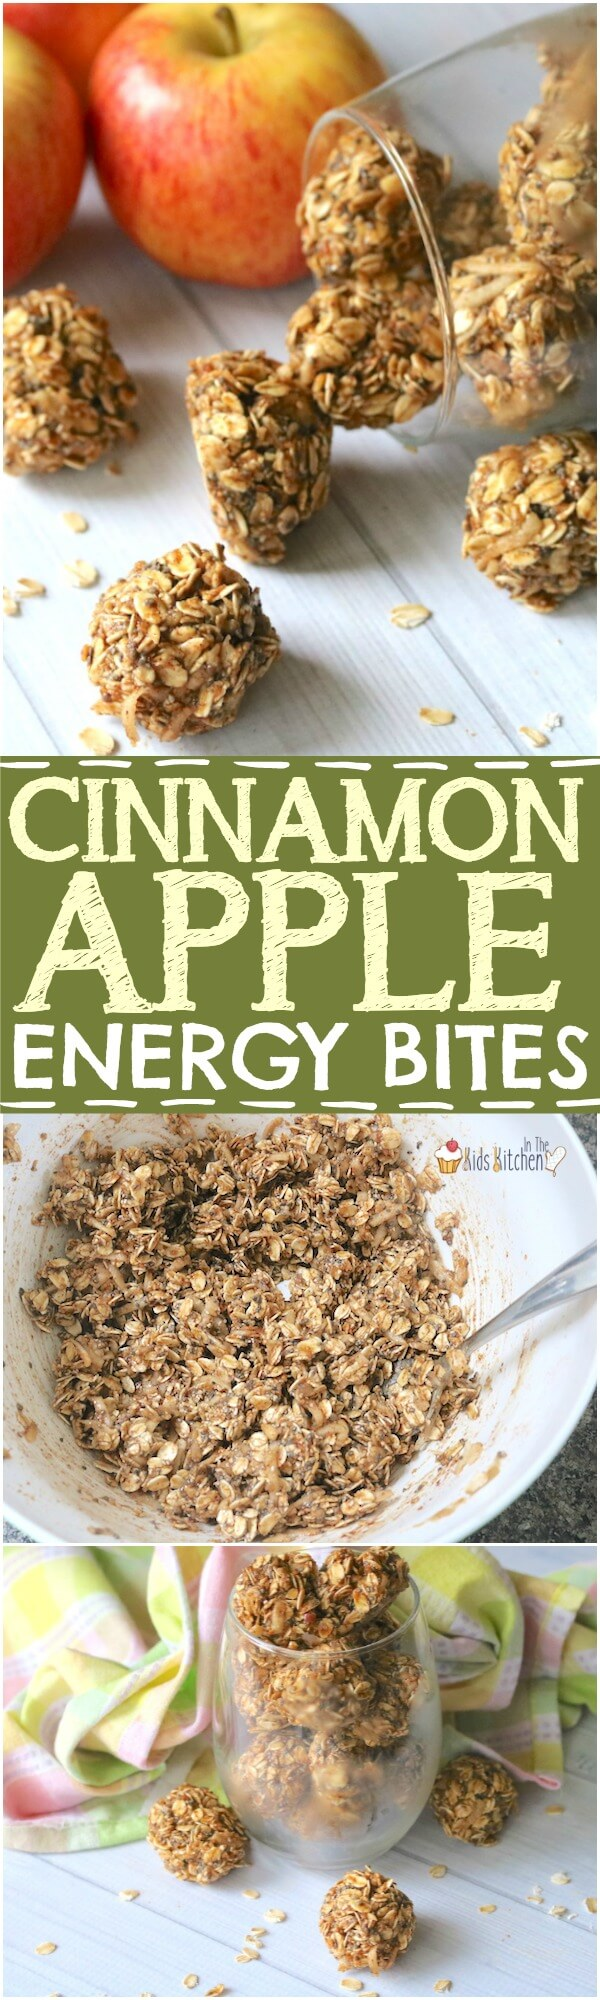 A healthy snack that both kids and parents can agree on — these yummy bite sized Apple Cinnamon Oat Balls take just minutes to make!